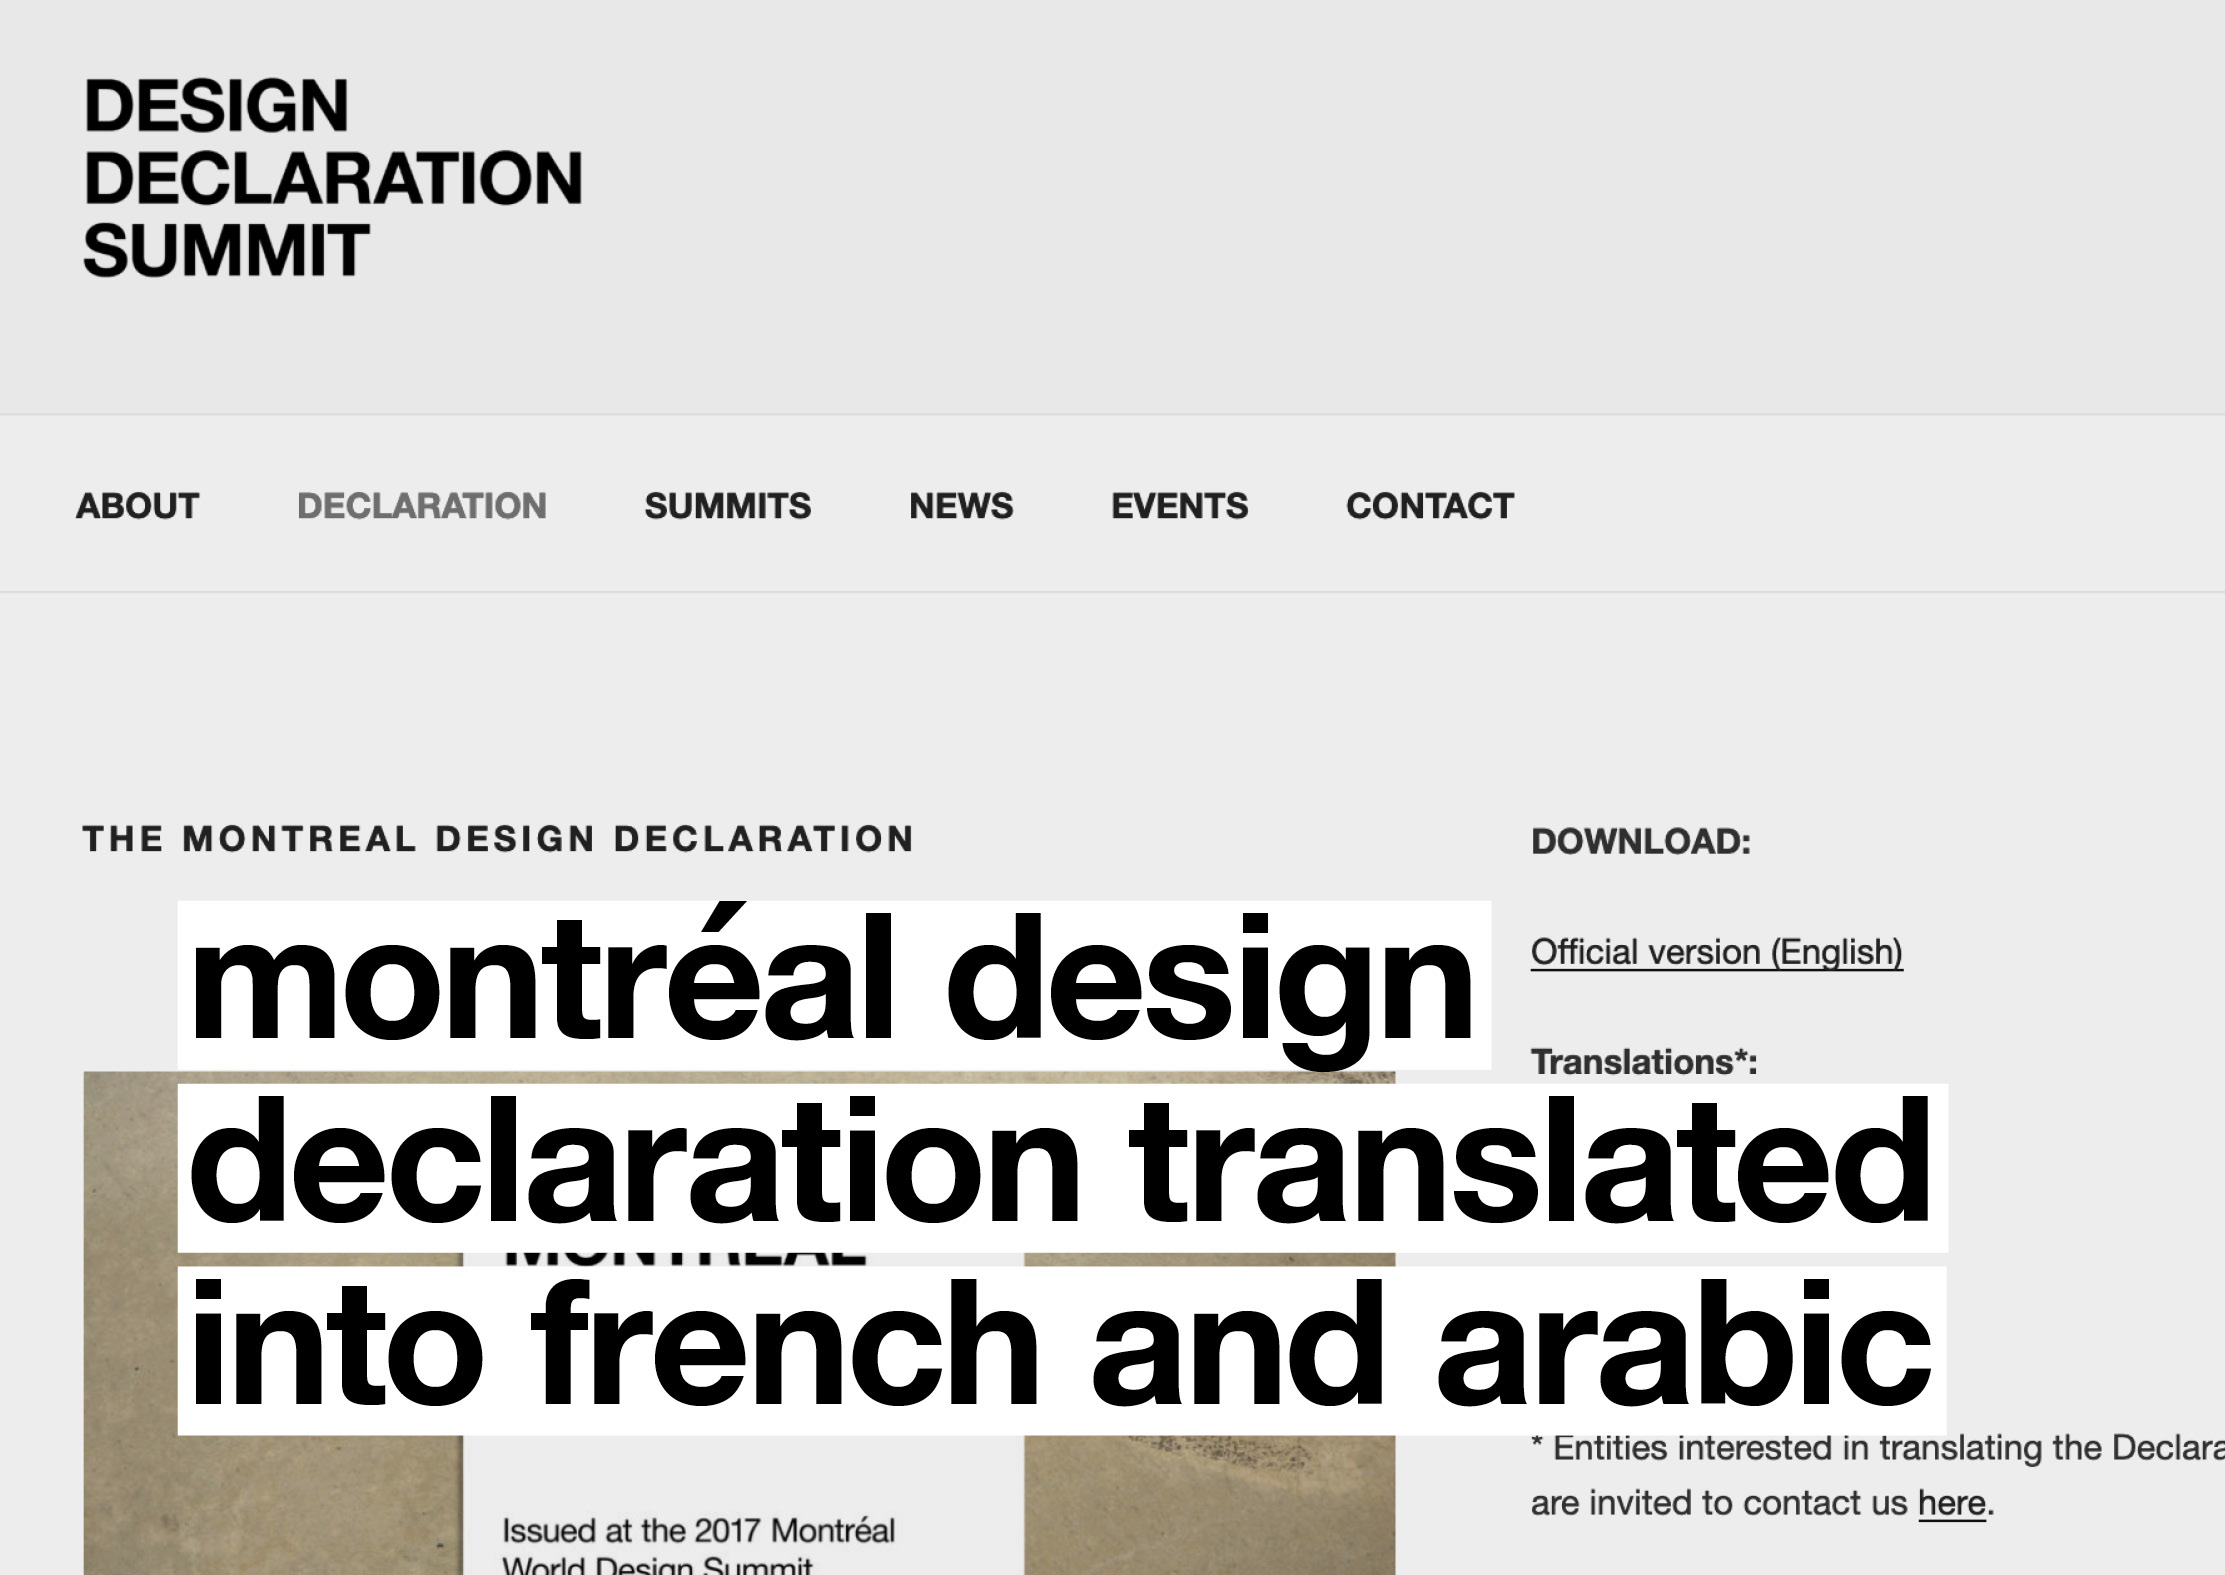 Montréal Design Declaration translated into French and Arabic